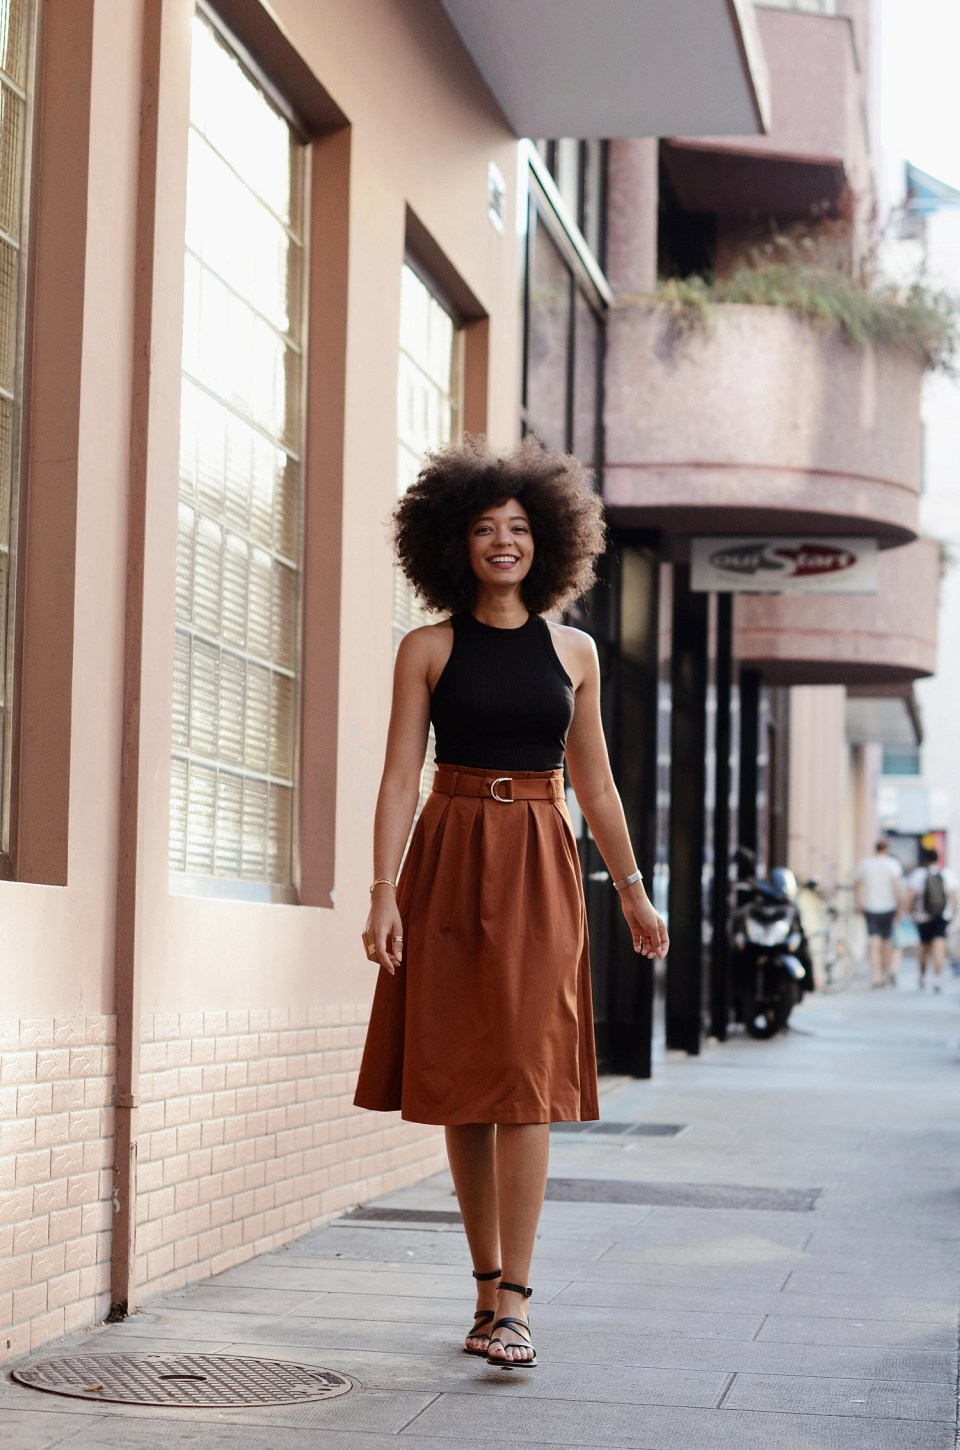 mercredie-blog-mode-geneve-blogger-swiss-suisse-switzerland-geneva-epicure-sandales-sandals-k-jacques-st-tropez-noires-black-ebene-jupe-esprit-paper-bag-skirt-afro-hair-natural2